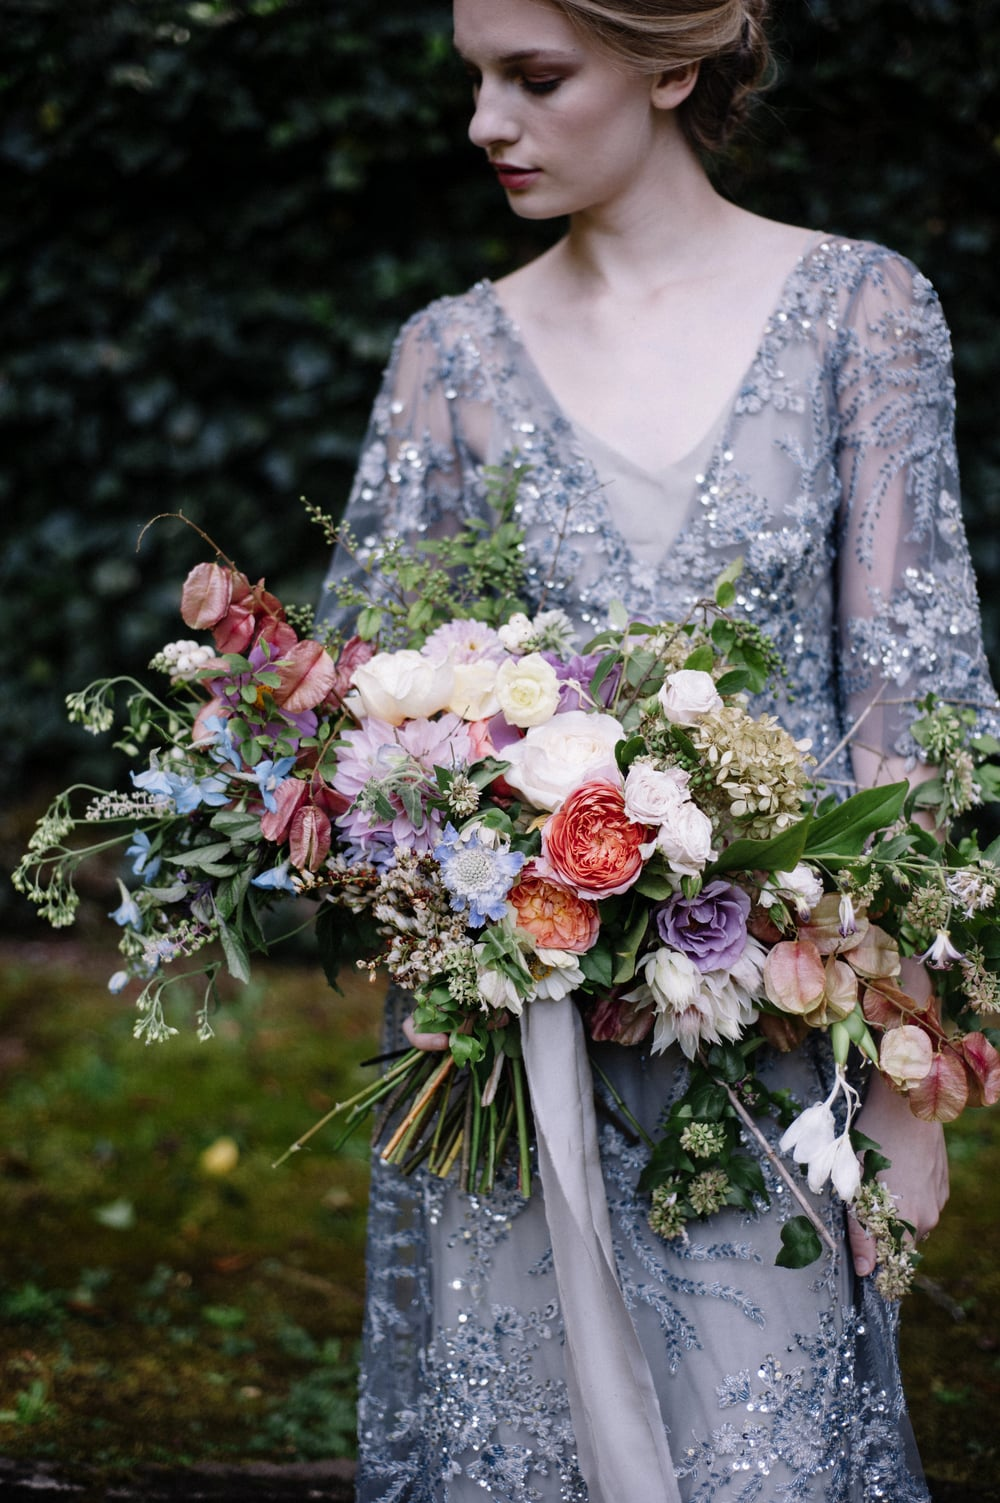 amy-osaba-events-flower-workshop-katie-hyatt-blue-dress-pink-flowers-bouquet55.jpg